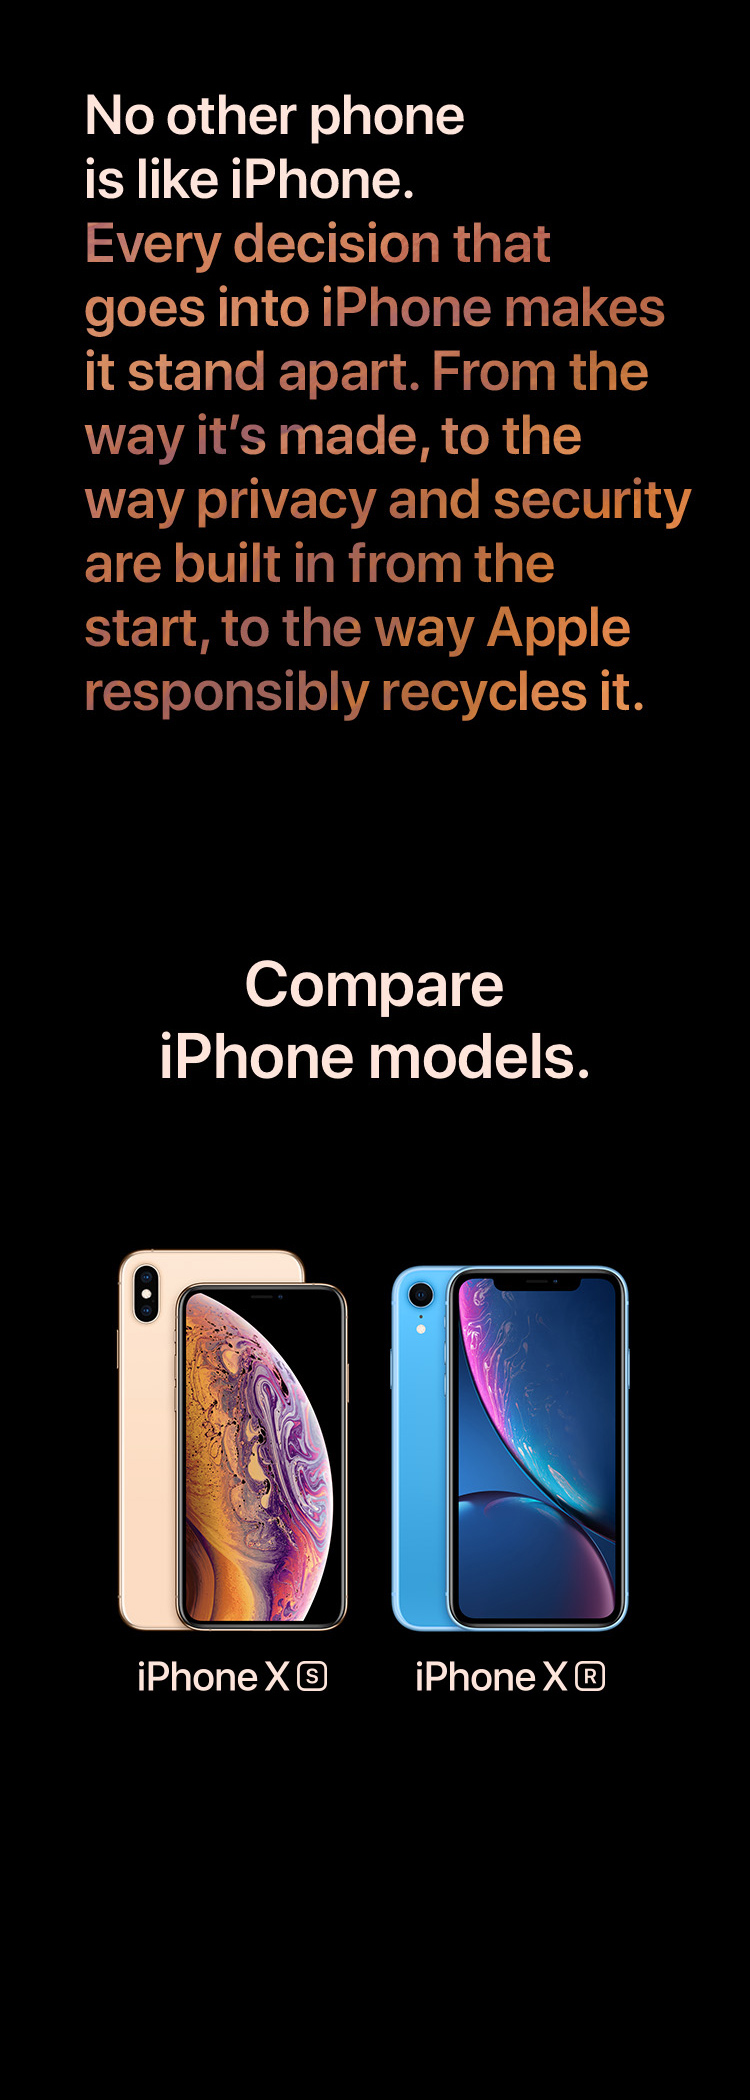 No other phone is like iPhone. Every decision that goes into iPhone makes it stand apart. From the way it's made, to the way privacy and security are built in from the start, to the way Apple responsibly recycles it. Compare iPhone models. iPhone XS. iPhone XR.